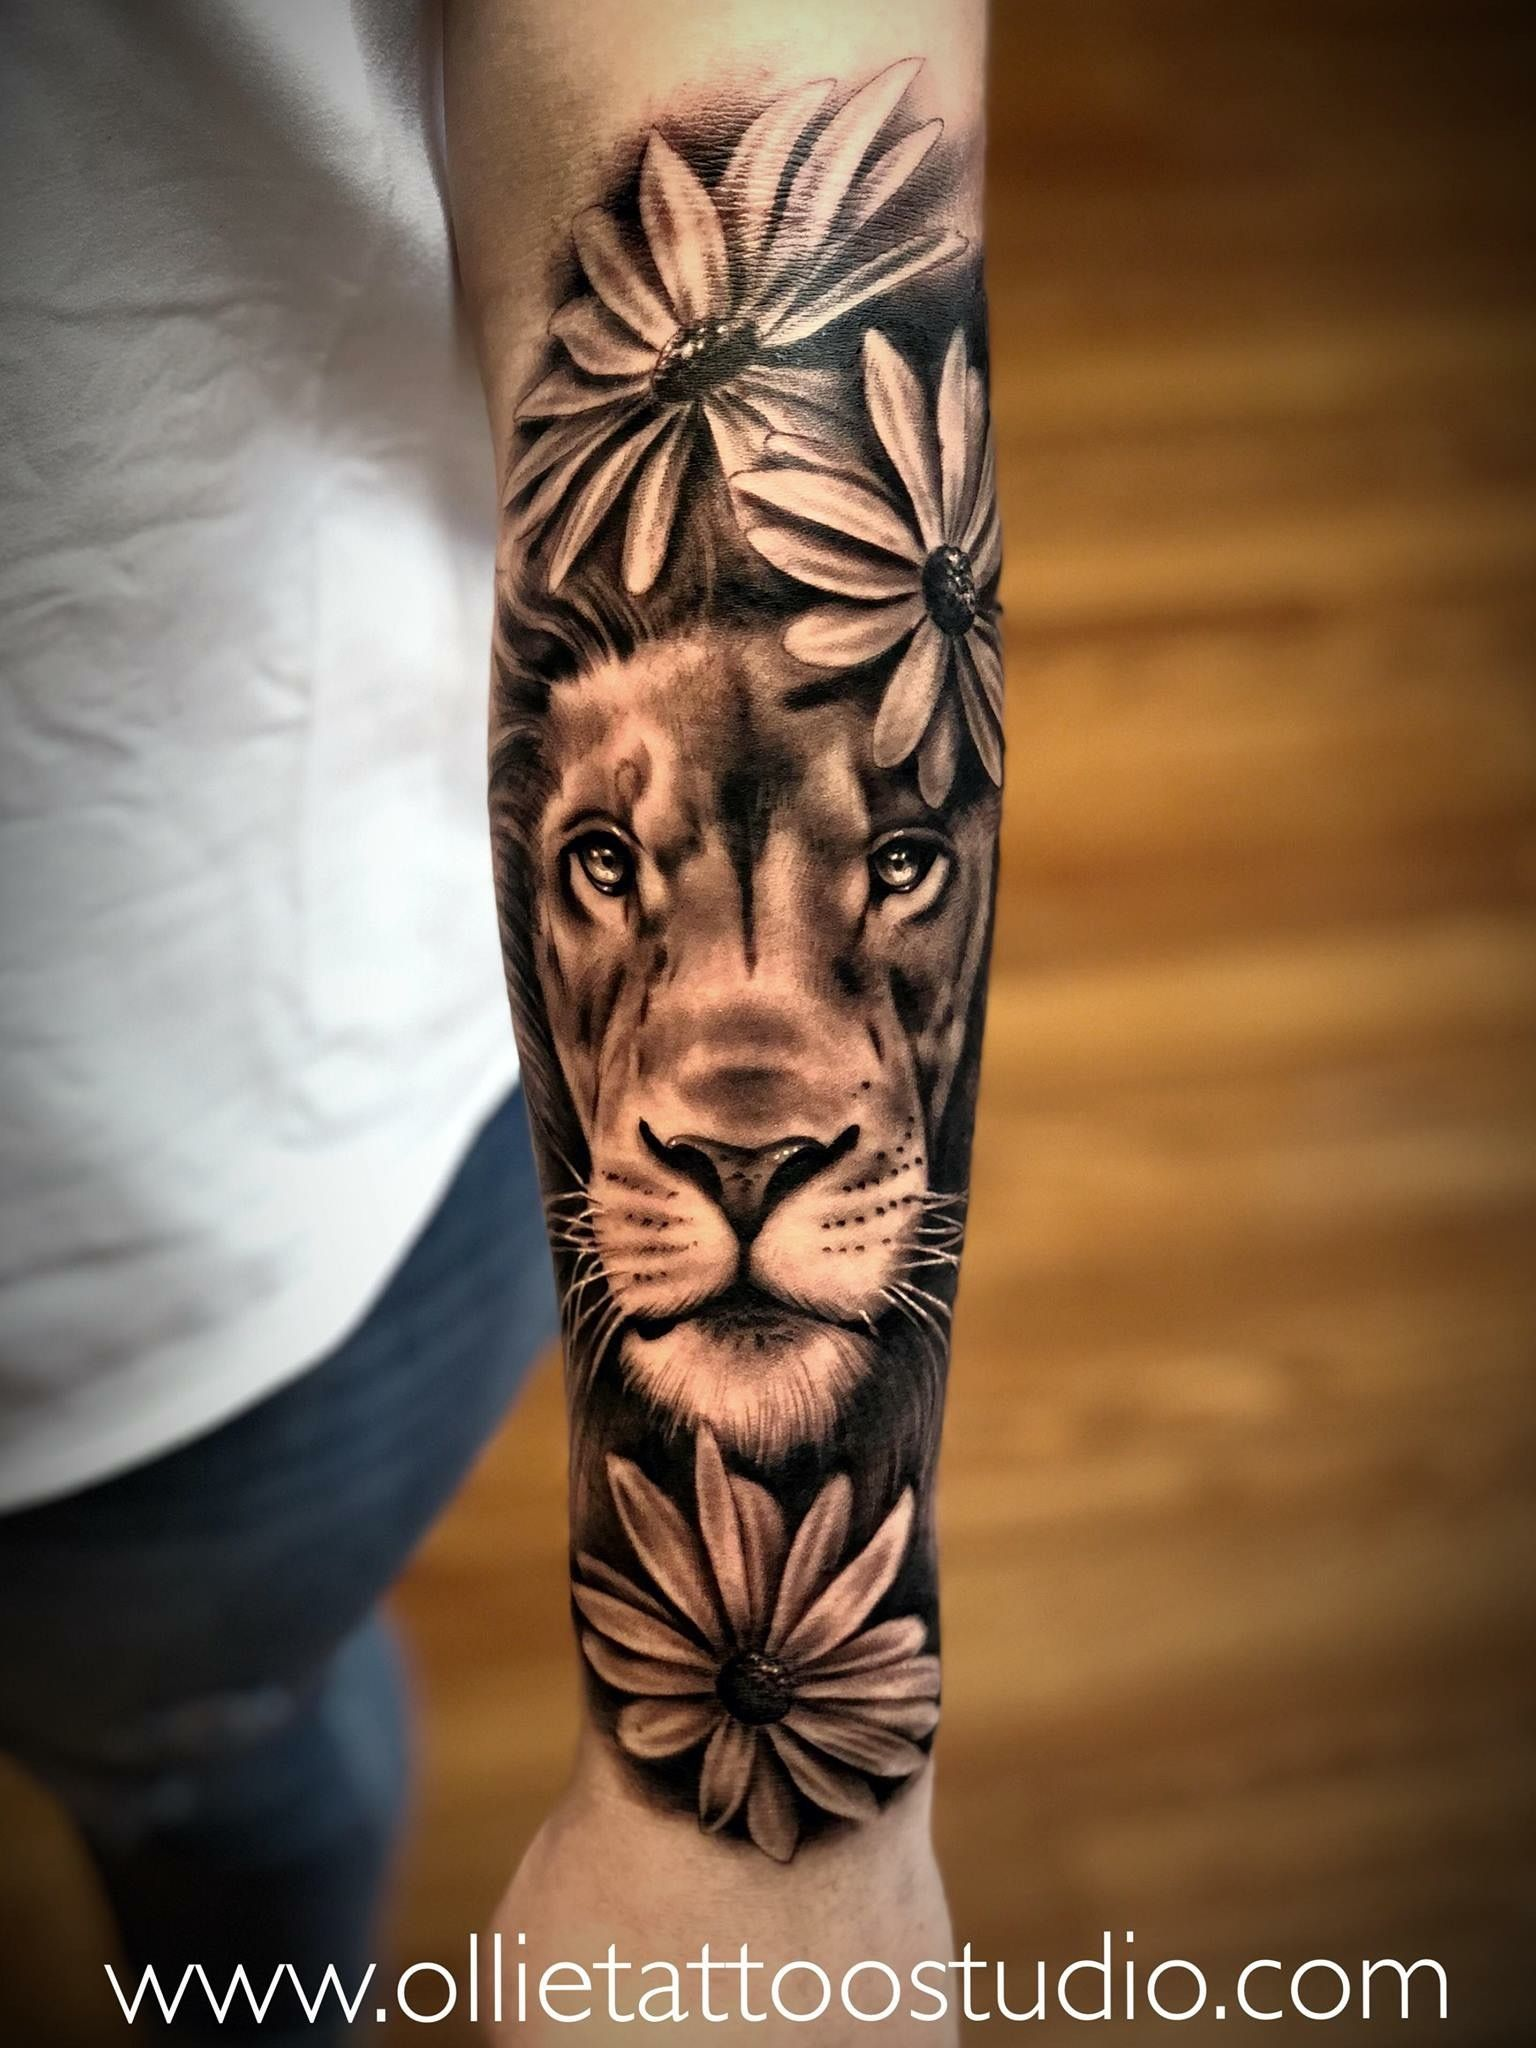 Pin By Red Gonzalez On Tattoos Half Sleeve Tattoo Animal Sleeve Tattoo Tattoos For Women Half Sleeve